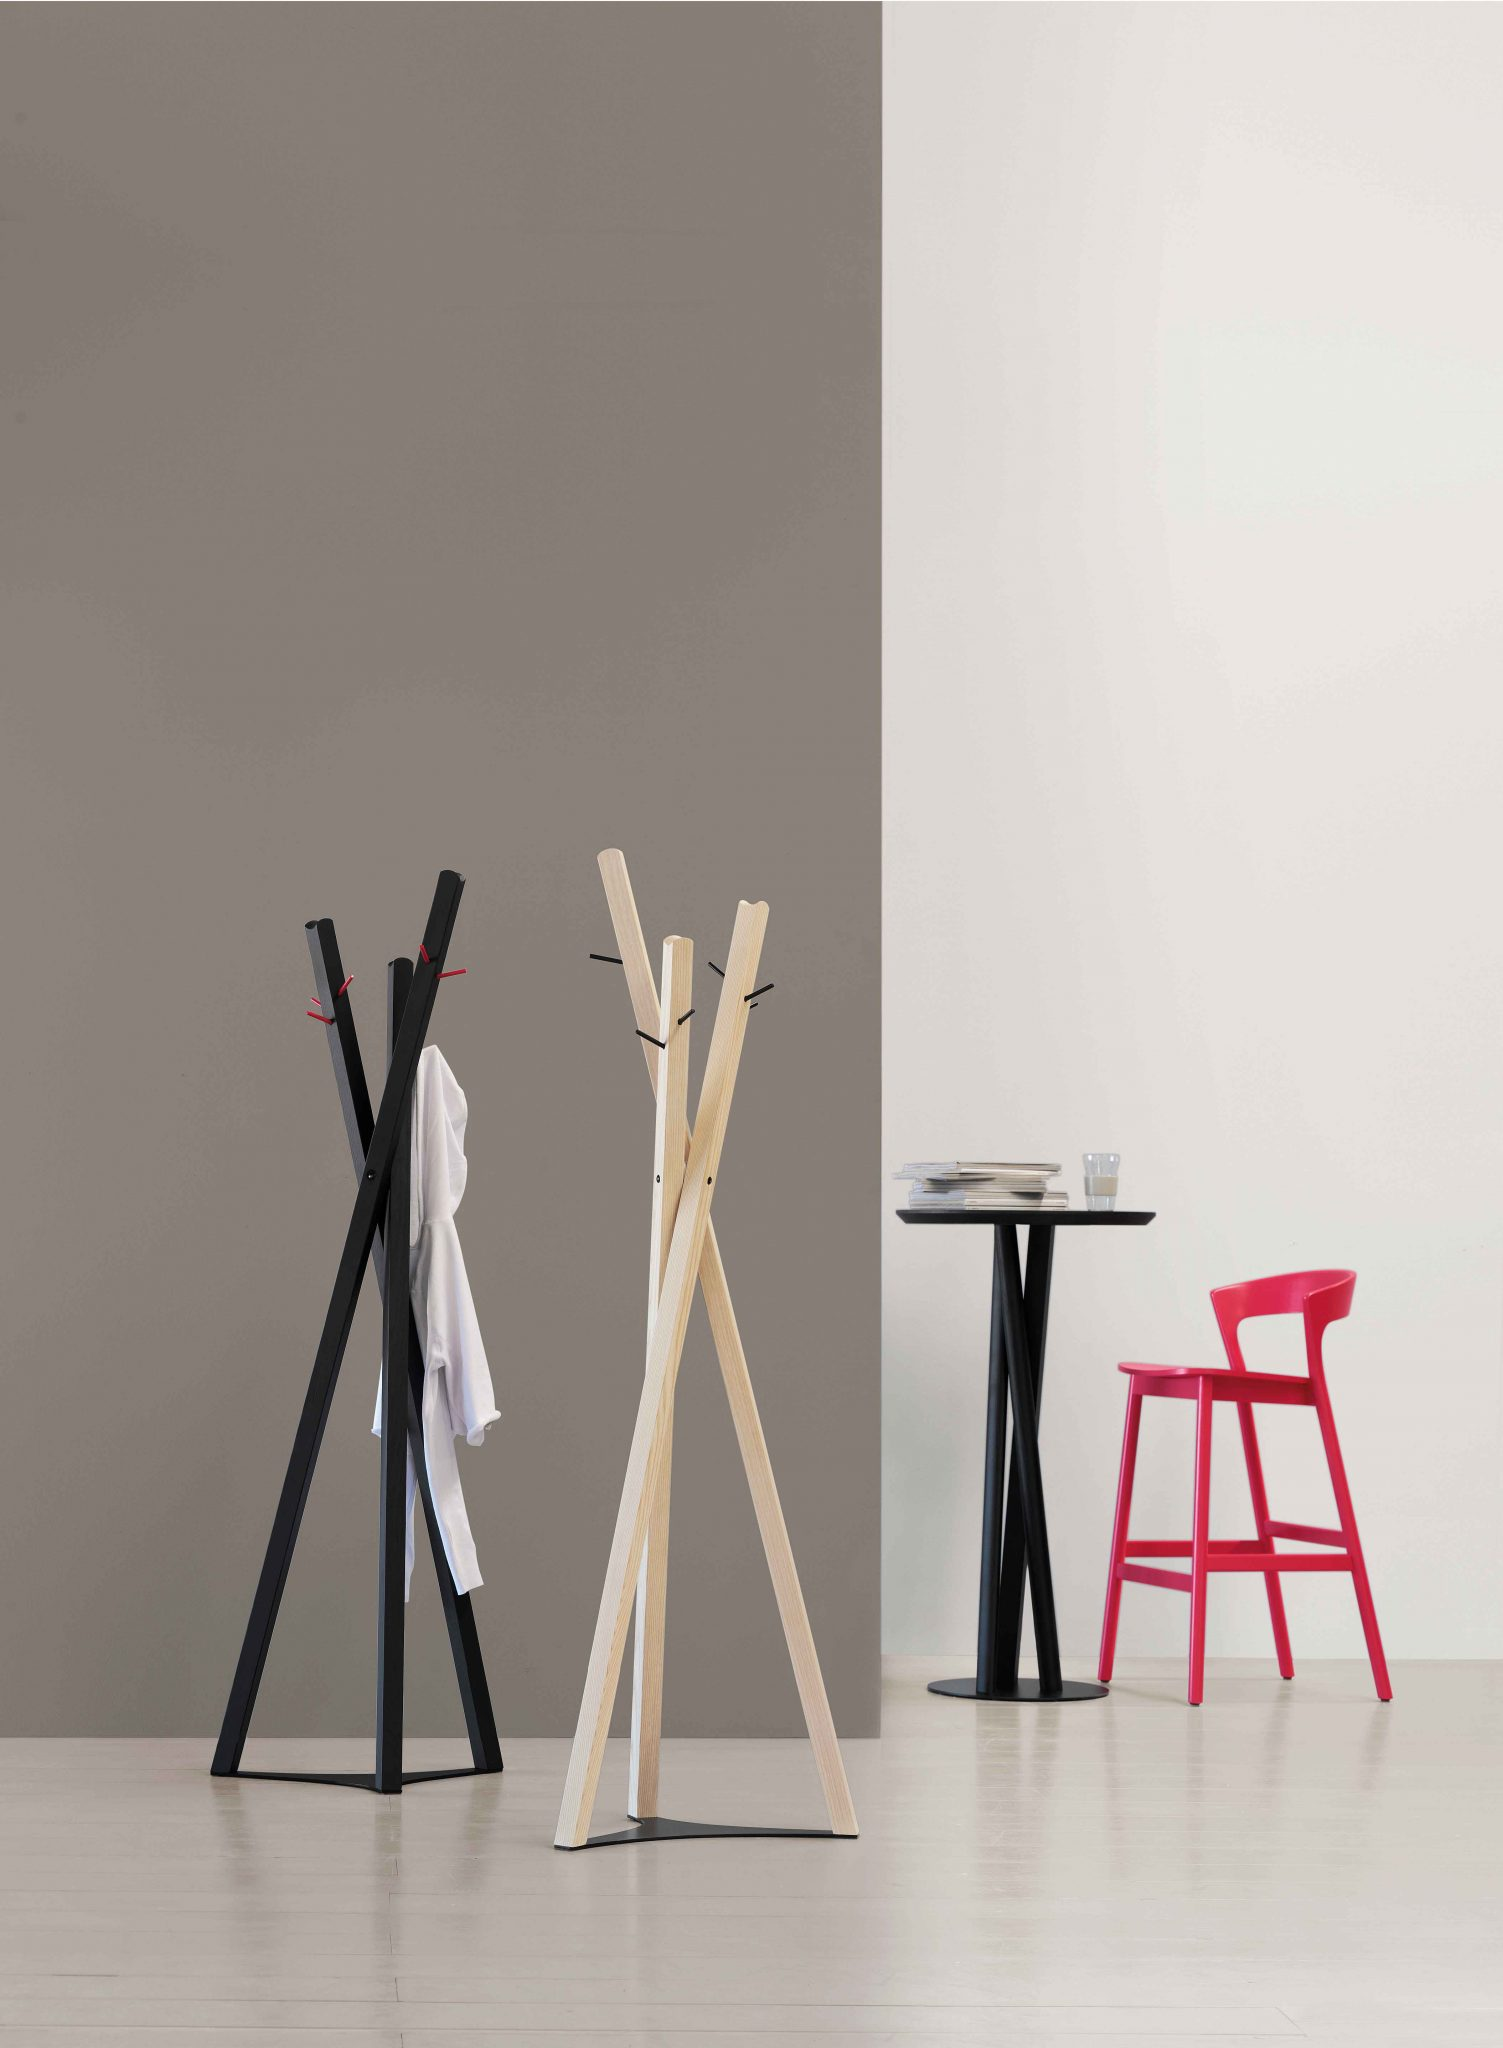 0074-LE-EDITH-Stool-0076-LE-TOBIAS-coat-rack-0124-R-NIELS-table-fast-food,0074-LE-EDITH-Sgabello-0076-LE-TOBIAS-appendiabiti-0124-R-NIELS-tavolo-fast-food,